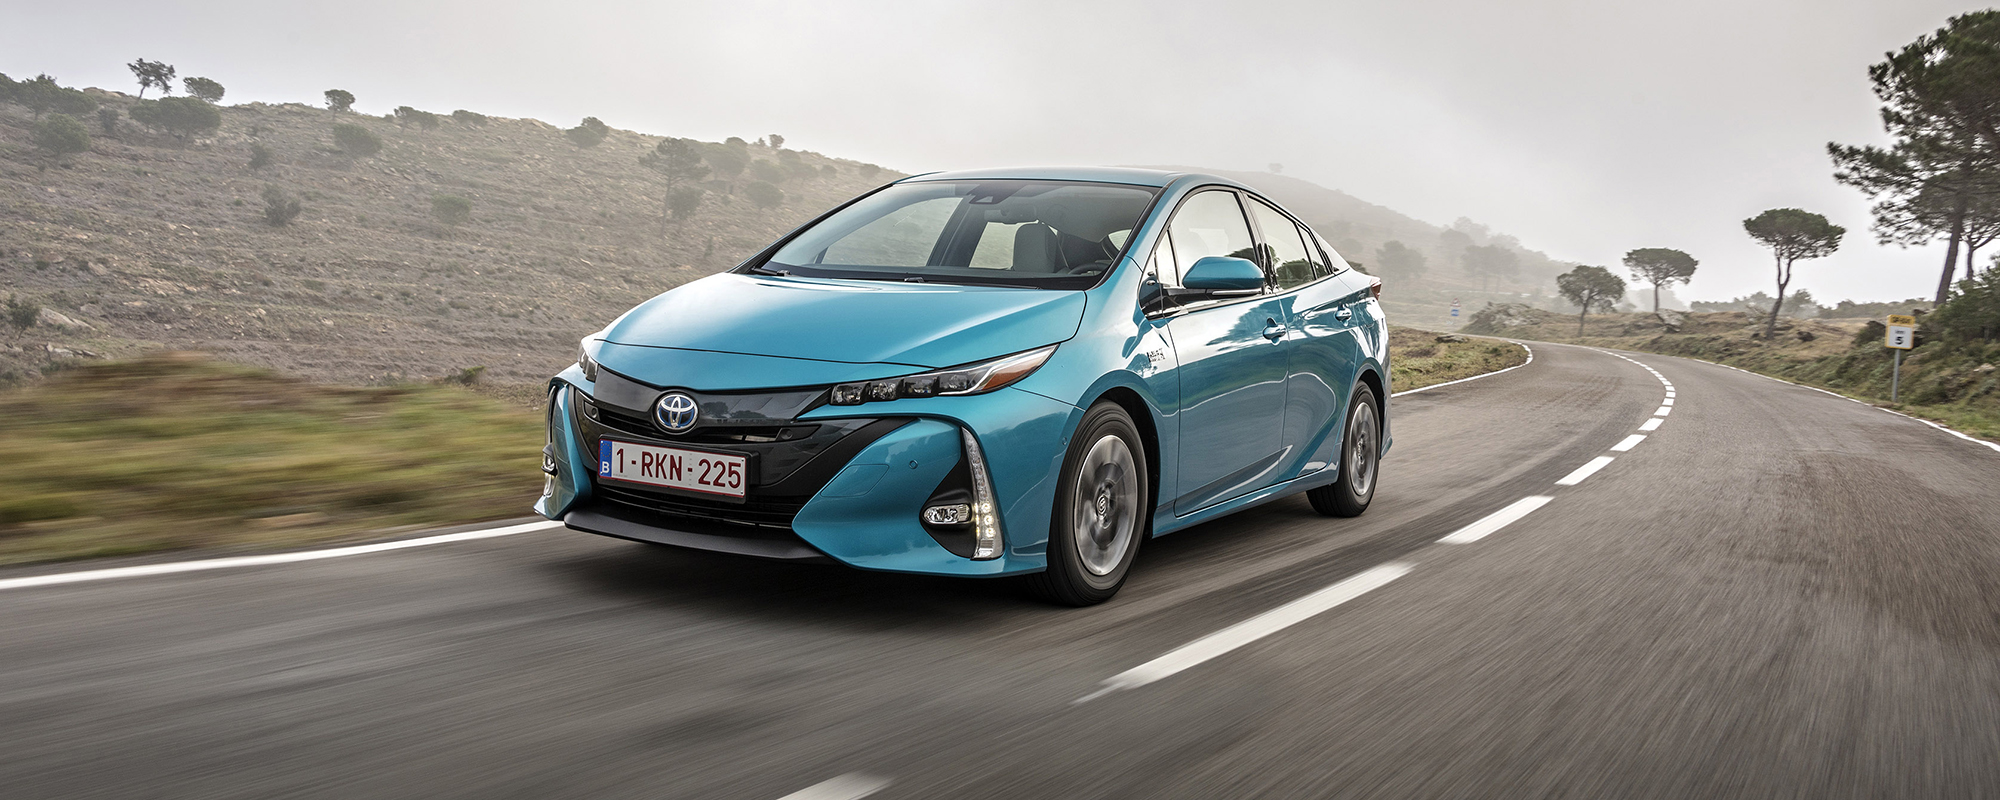 Toyota Prius Plug-in Hybrid is enige echte 'Green Machine'